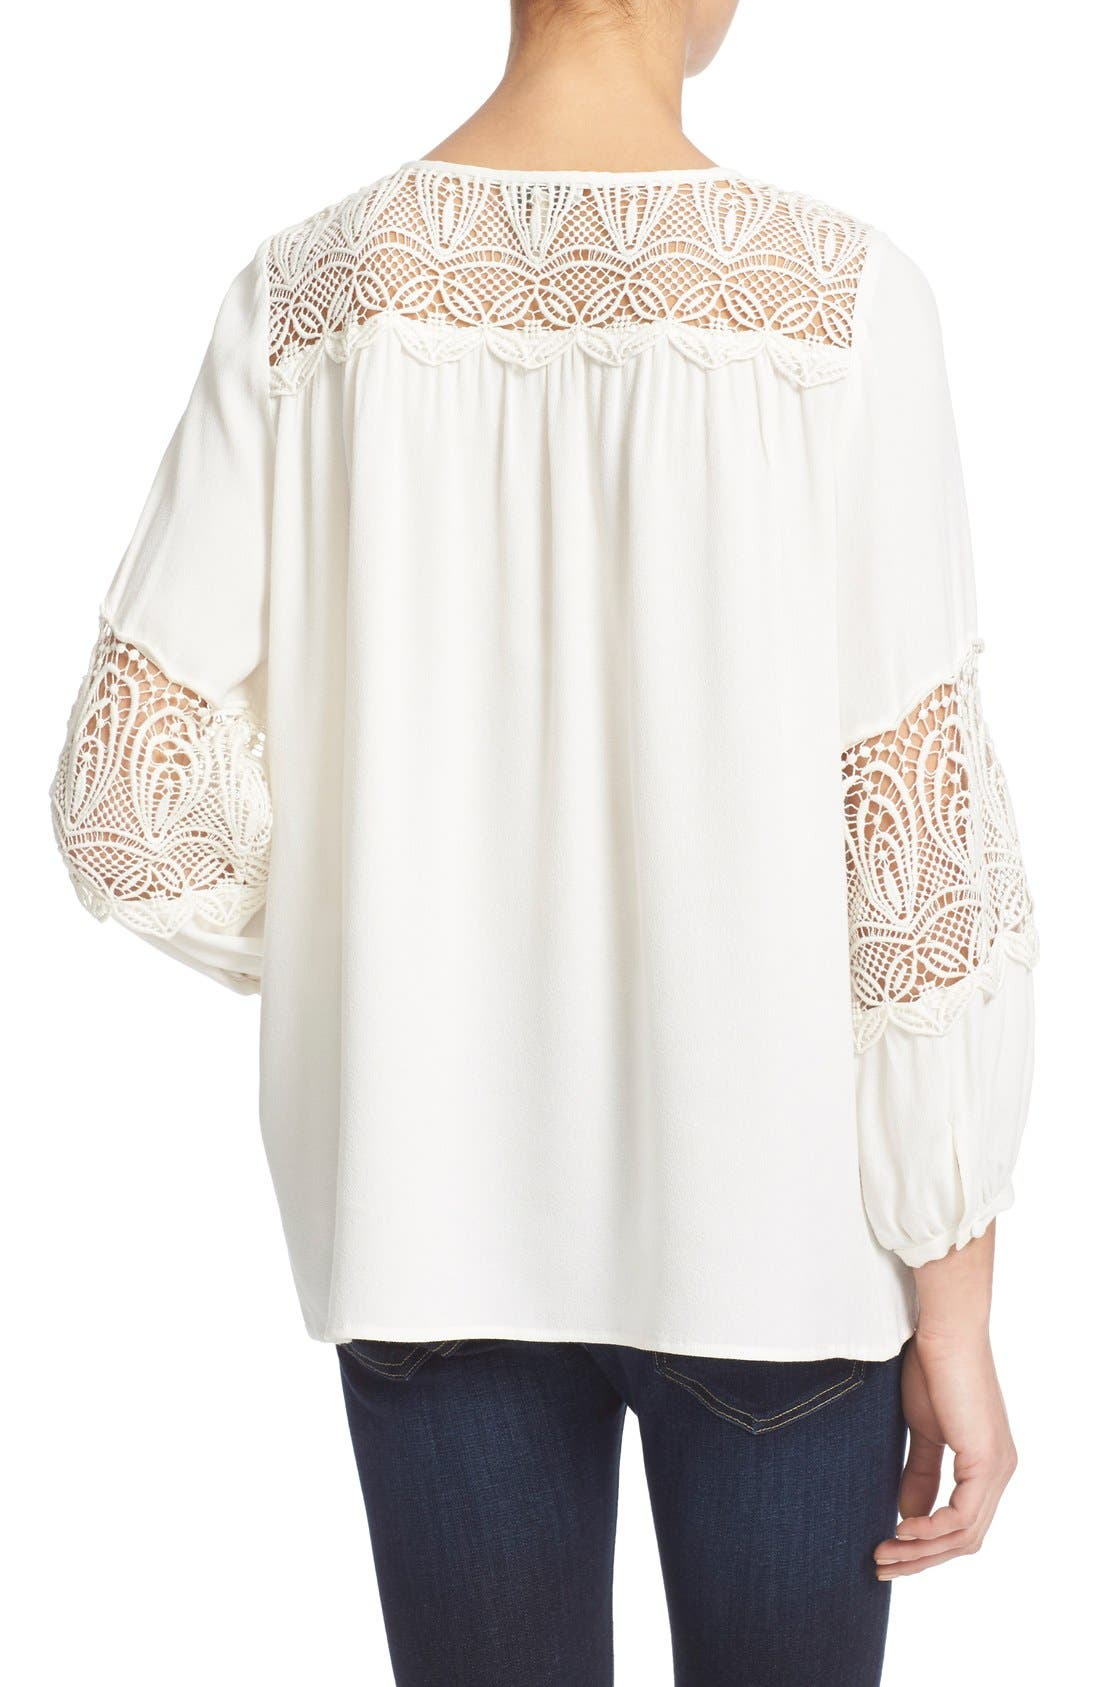 Alternate Image 2  - Joie 'Coastal' Lace Inset Blouse